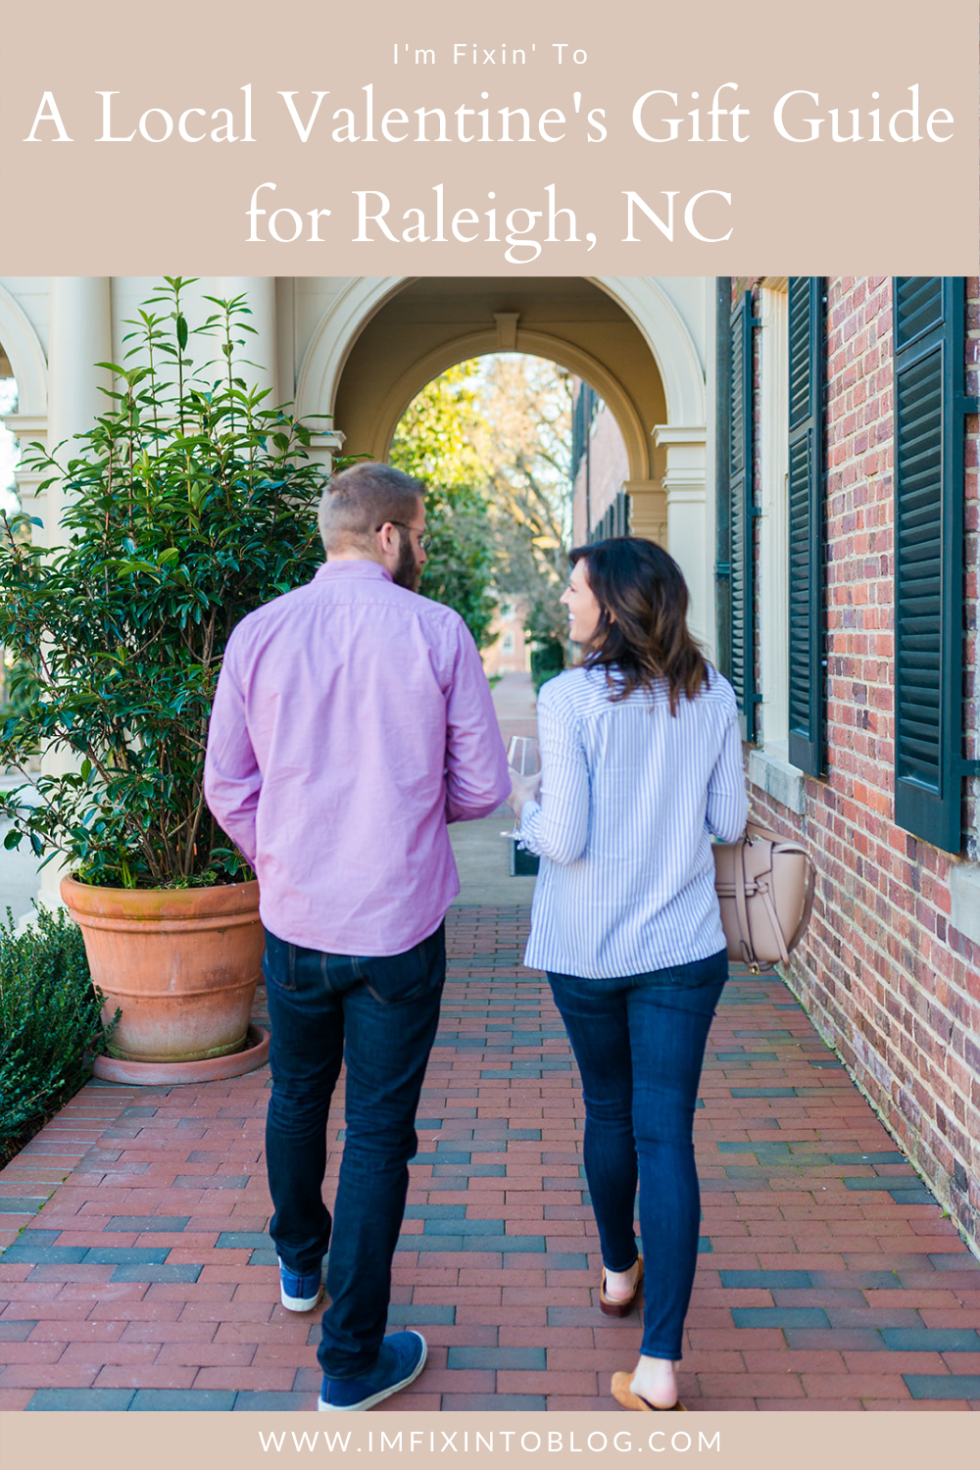 A Local Valentine's Gift Guide for Raleigh, NC - I'm Fixin' To - @imfixintoblog |Valentine's Day Gift Guide by popular NC lifestyle blog, I'm Fixin' To: image of a husband and wife walking together on a brick pathway.